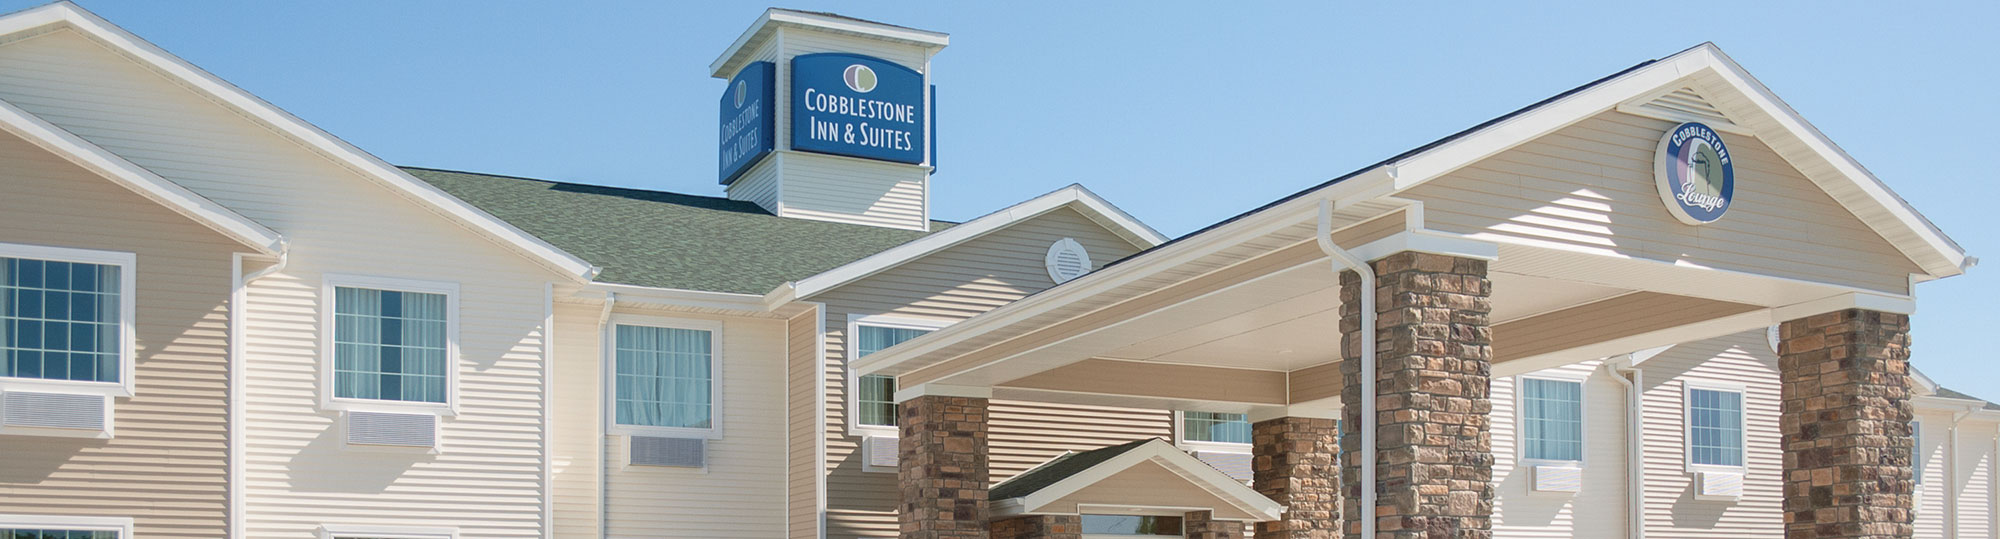 Cobblestone Inn and Suites Holdrege